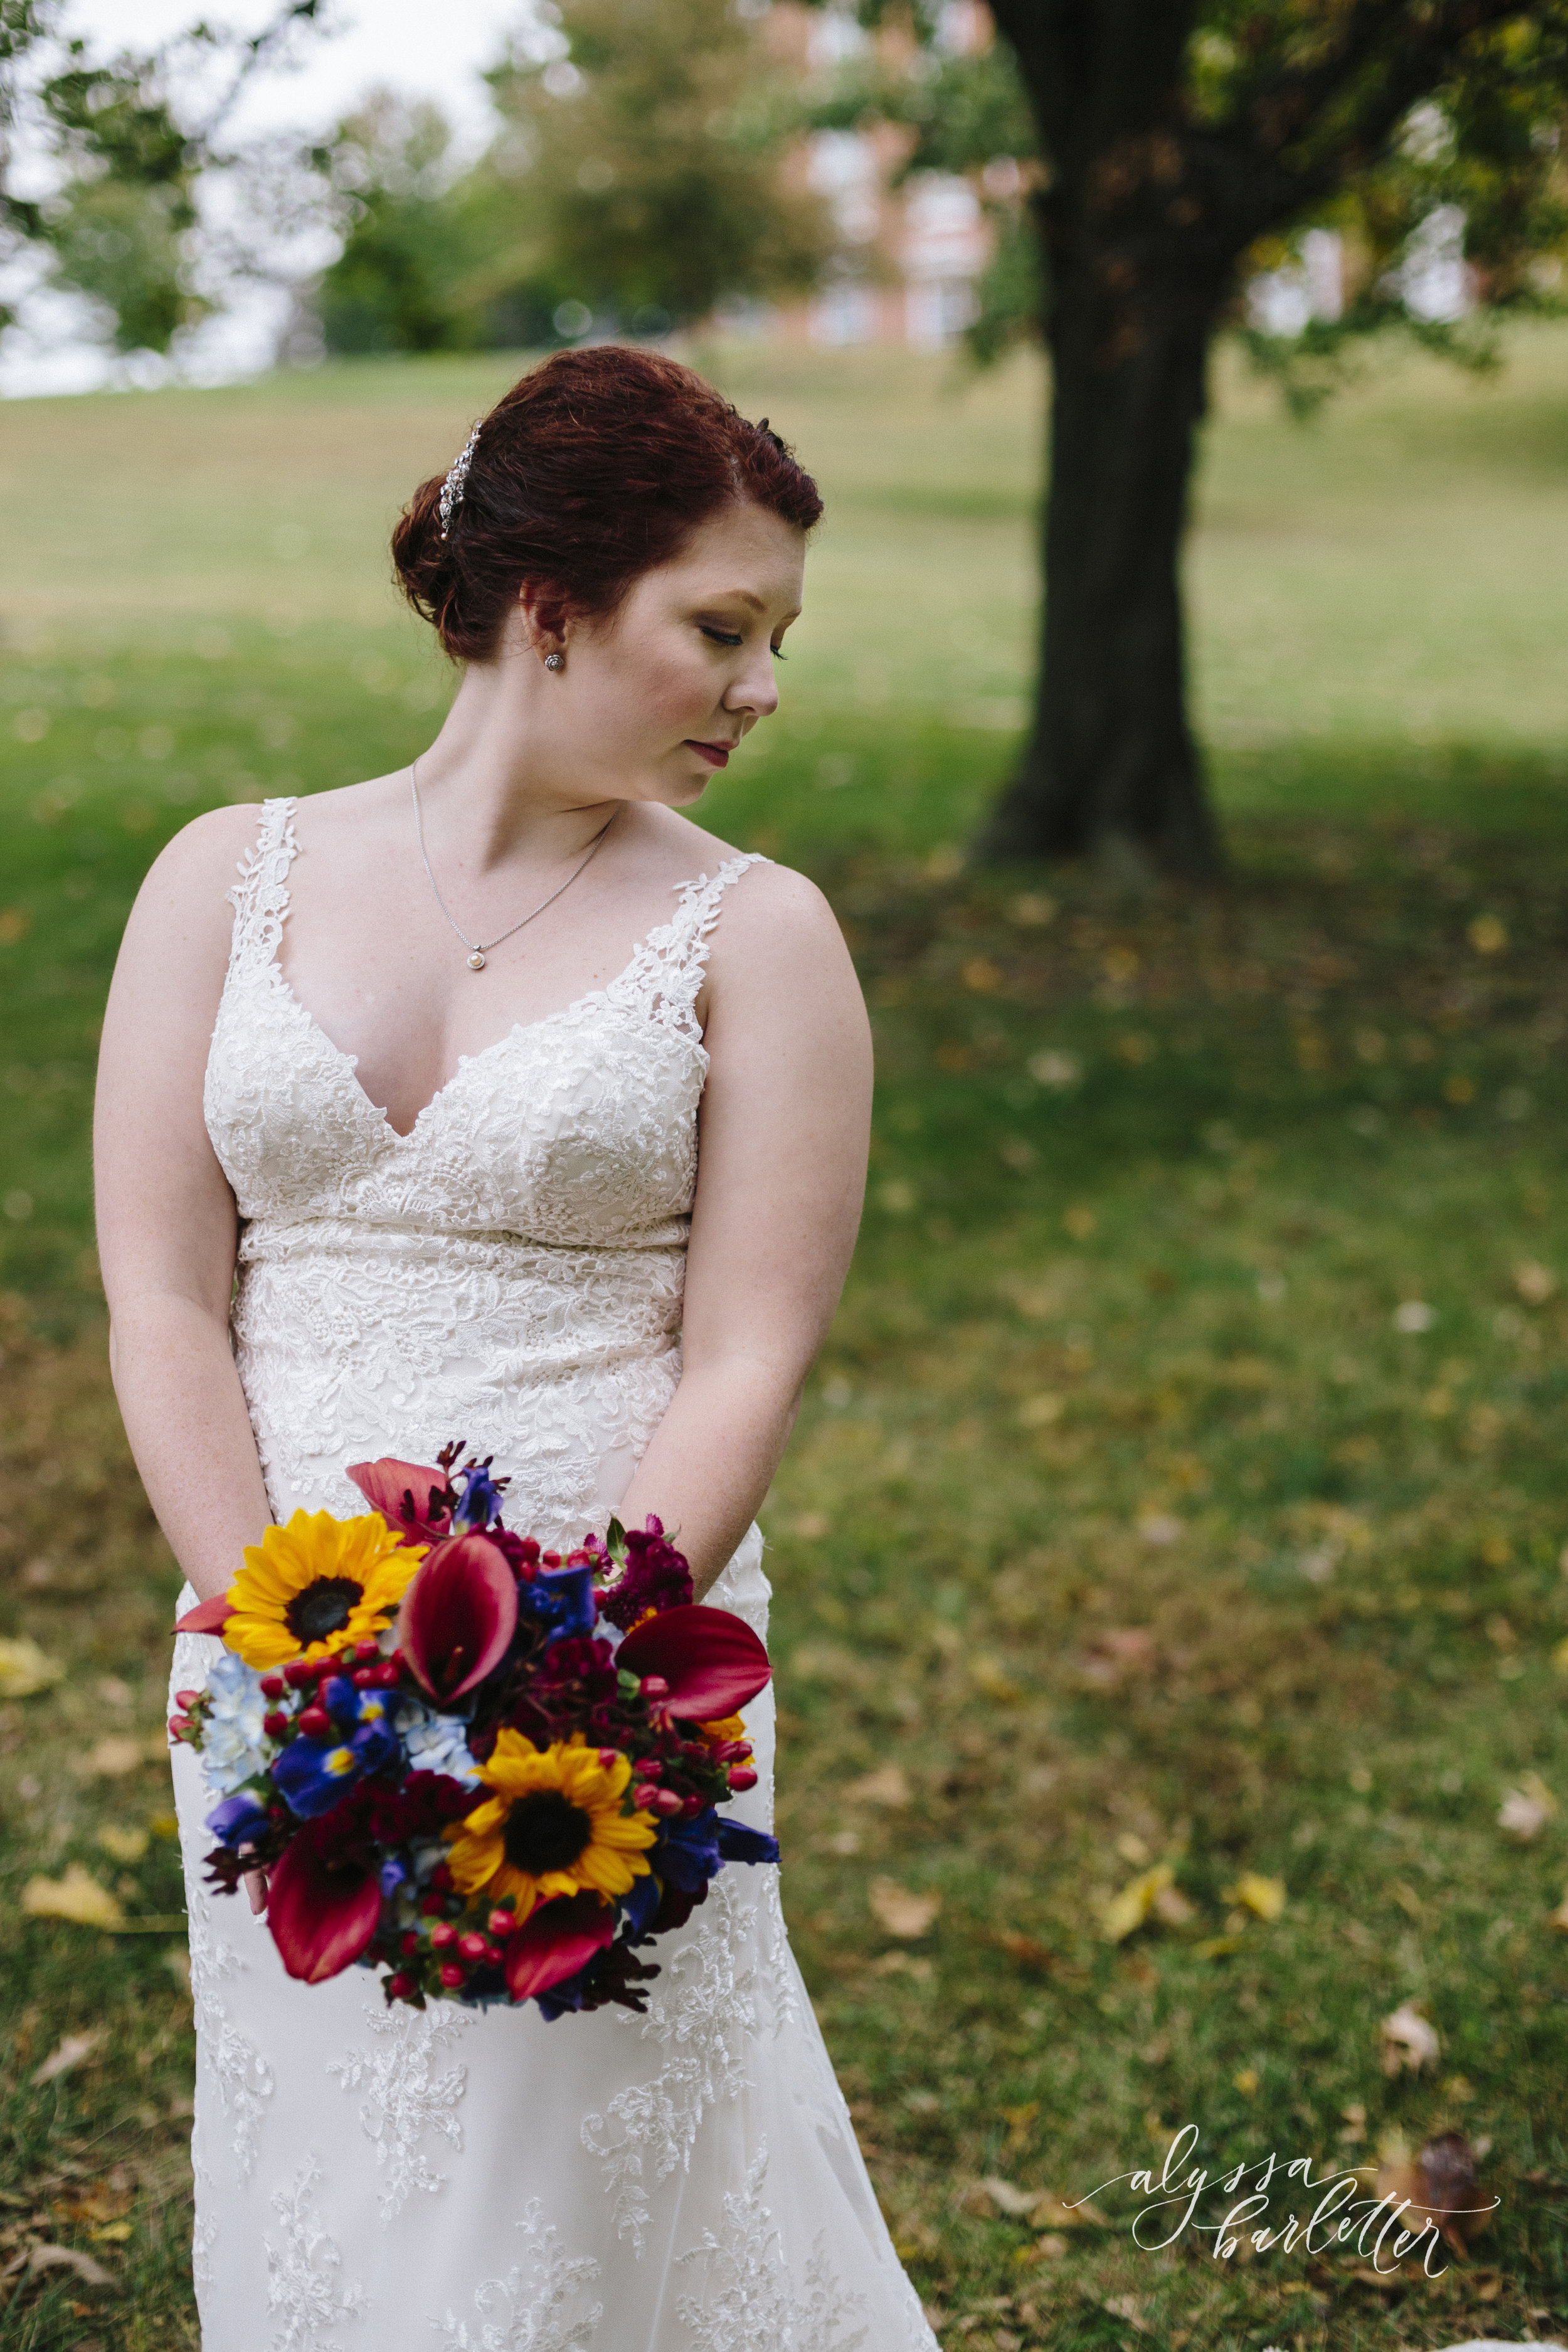 alyssa barletter photography wedding liberty missouri hipster quirky alex and shawn-1-14.jpg